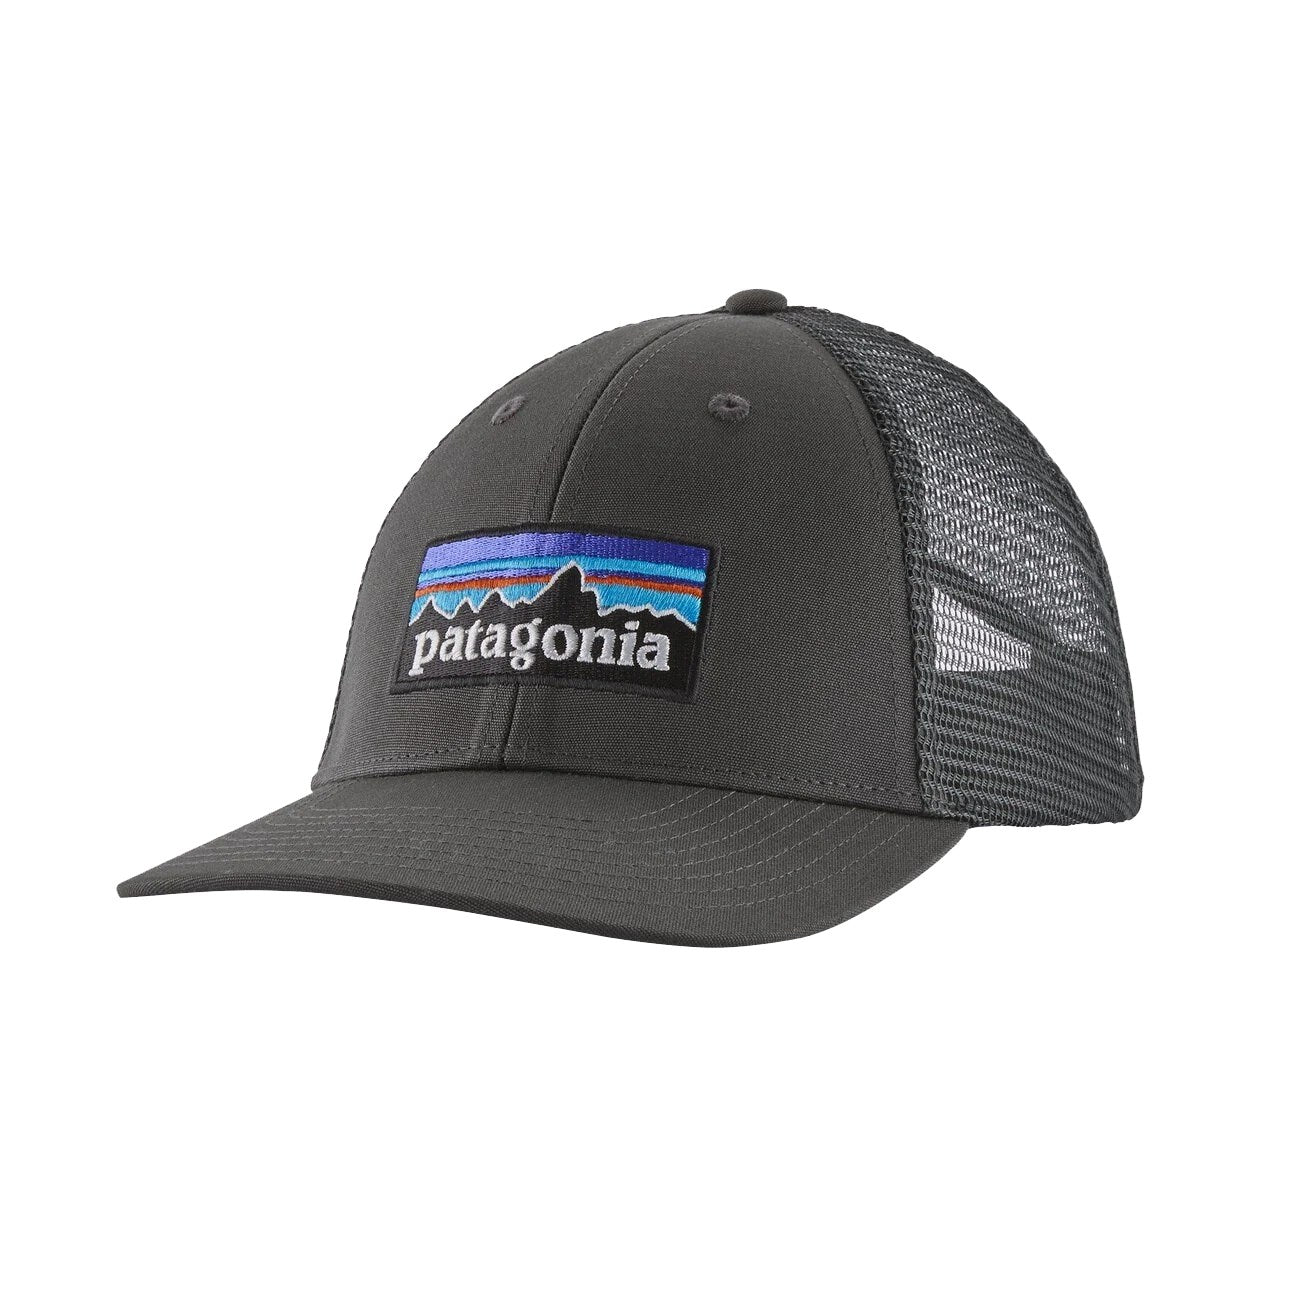 PATAGONIA LOPRO TRUCKER CAP FORGE GREY